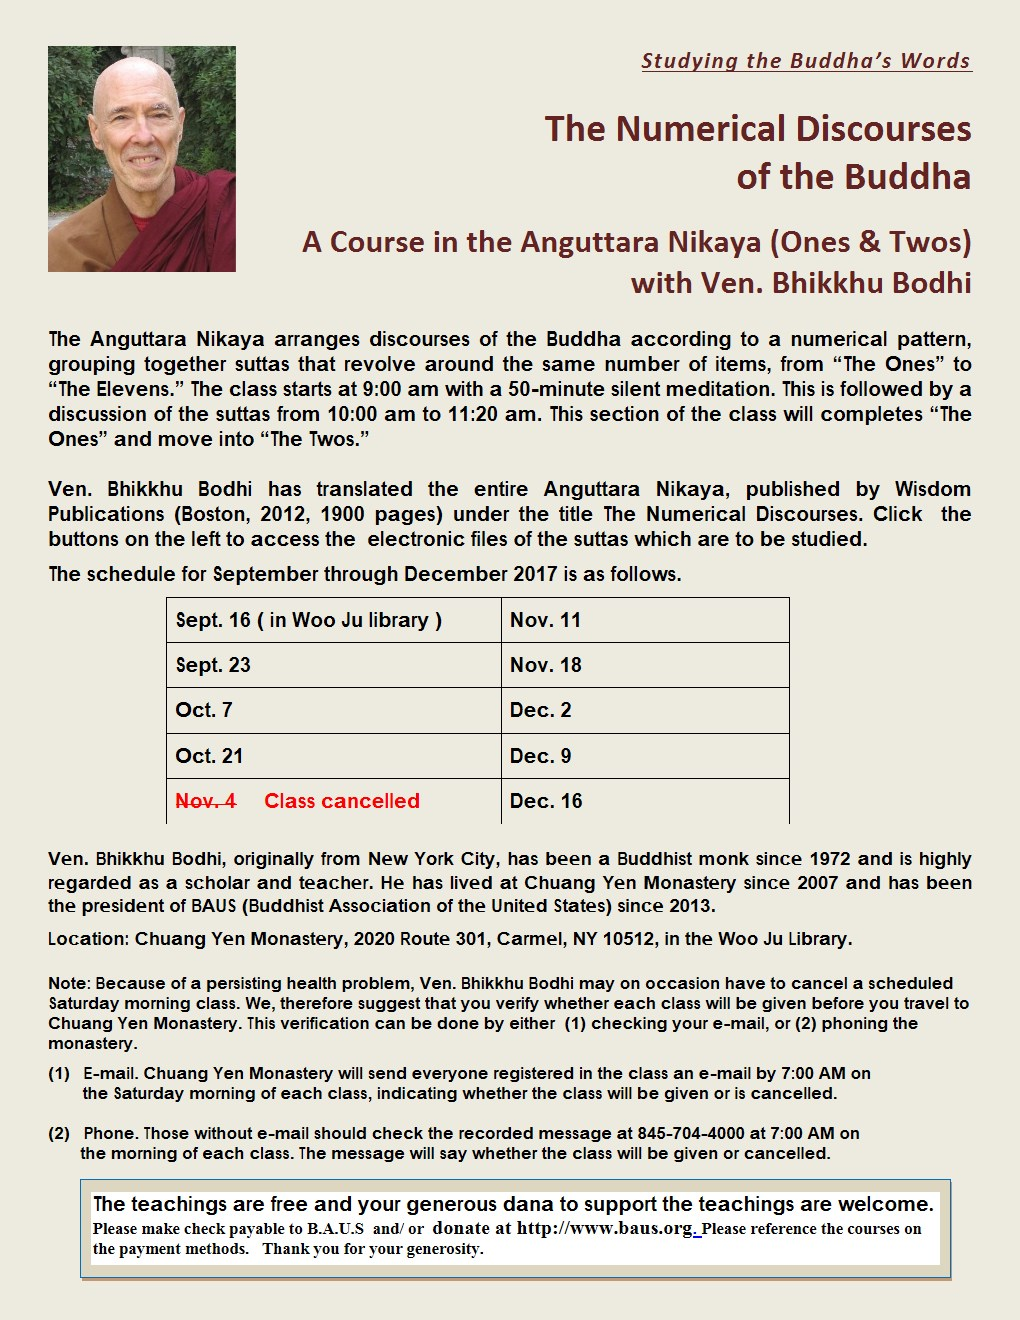 A Course in the Anguttara Nikaya (Ones & Twos) with Ven. Bikkhu Bodhi (CYM)